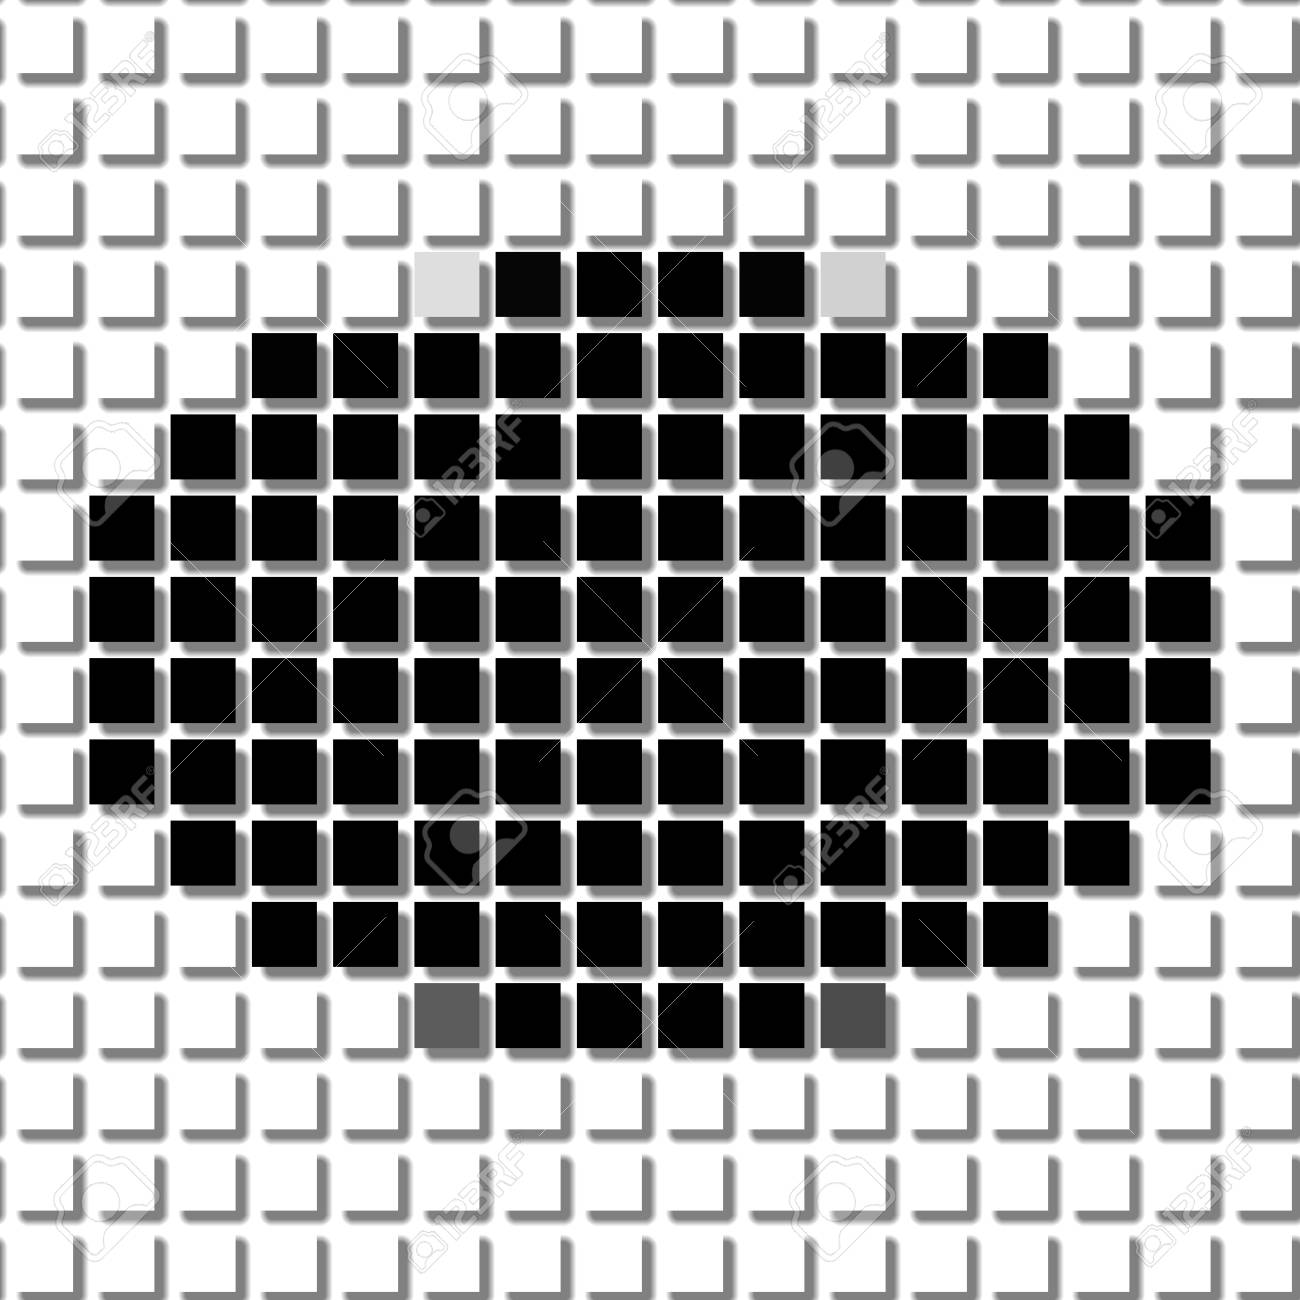 Ellipse. The Simple Geometric Pattern Of Black Squares With Shadowed ...